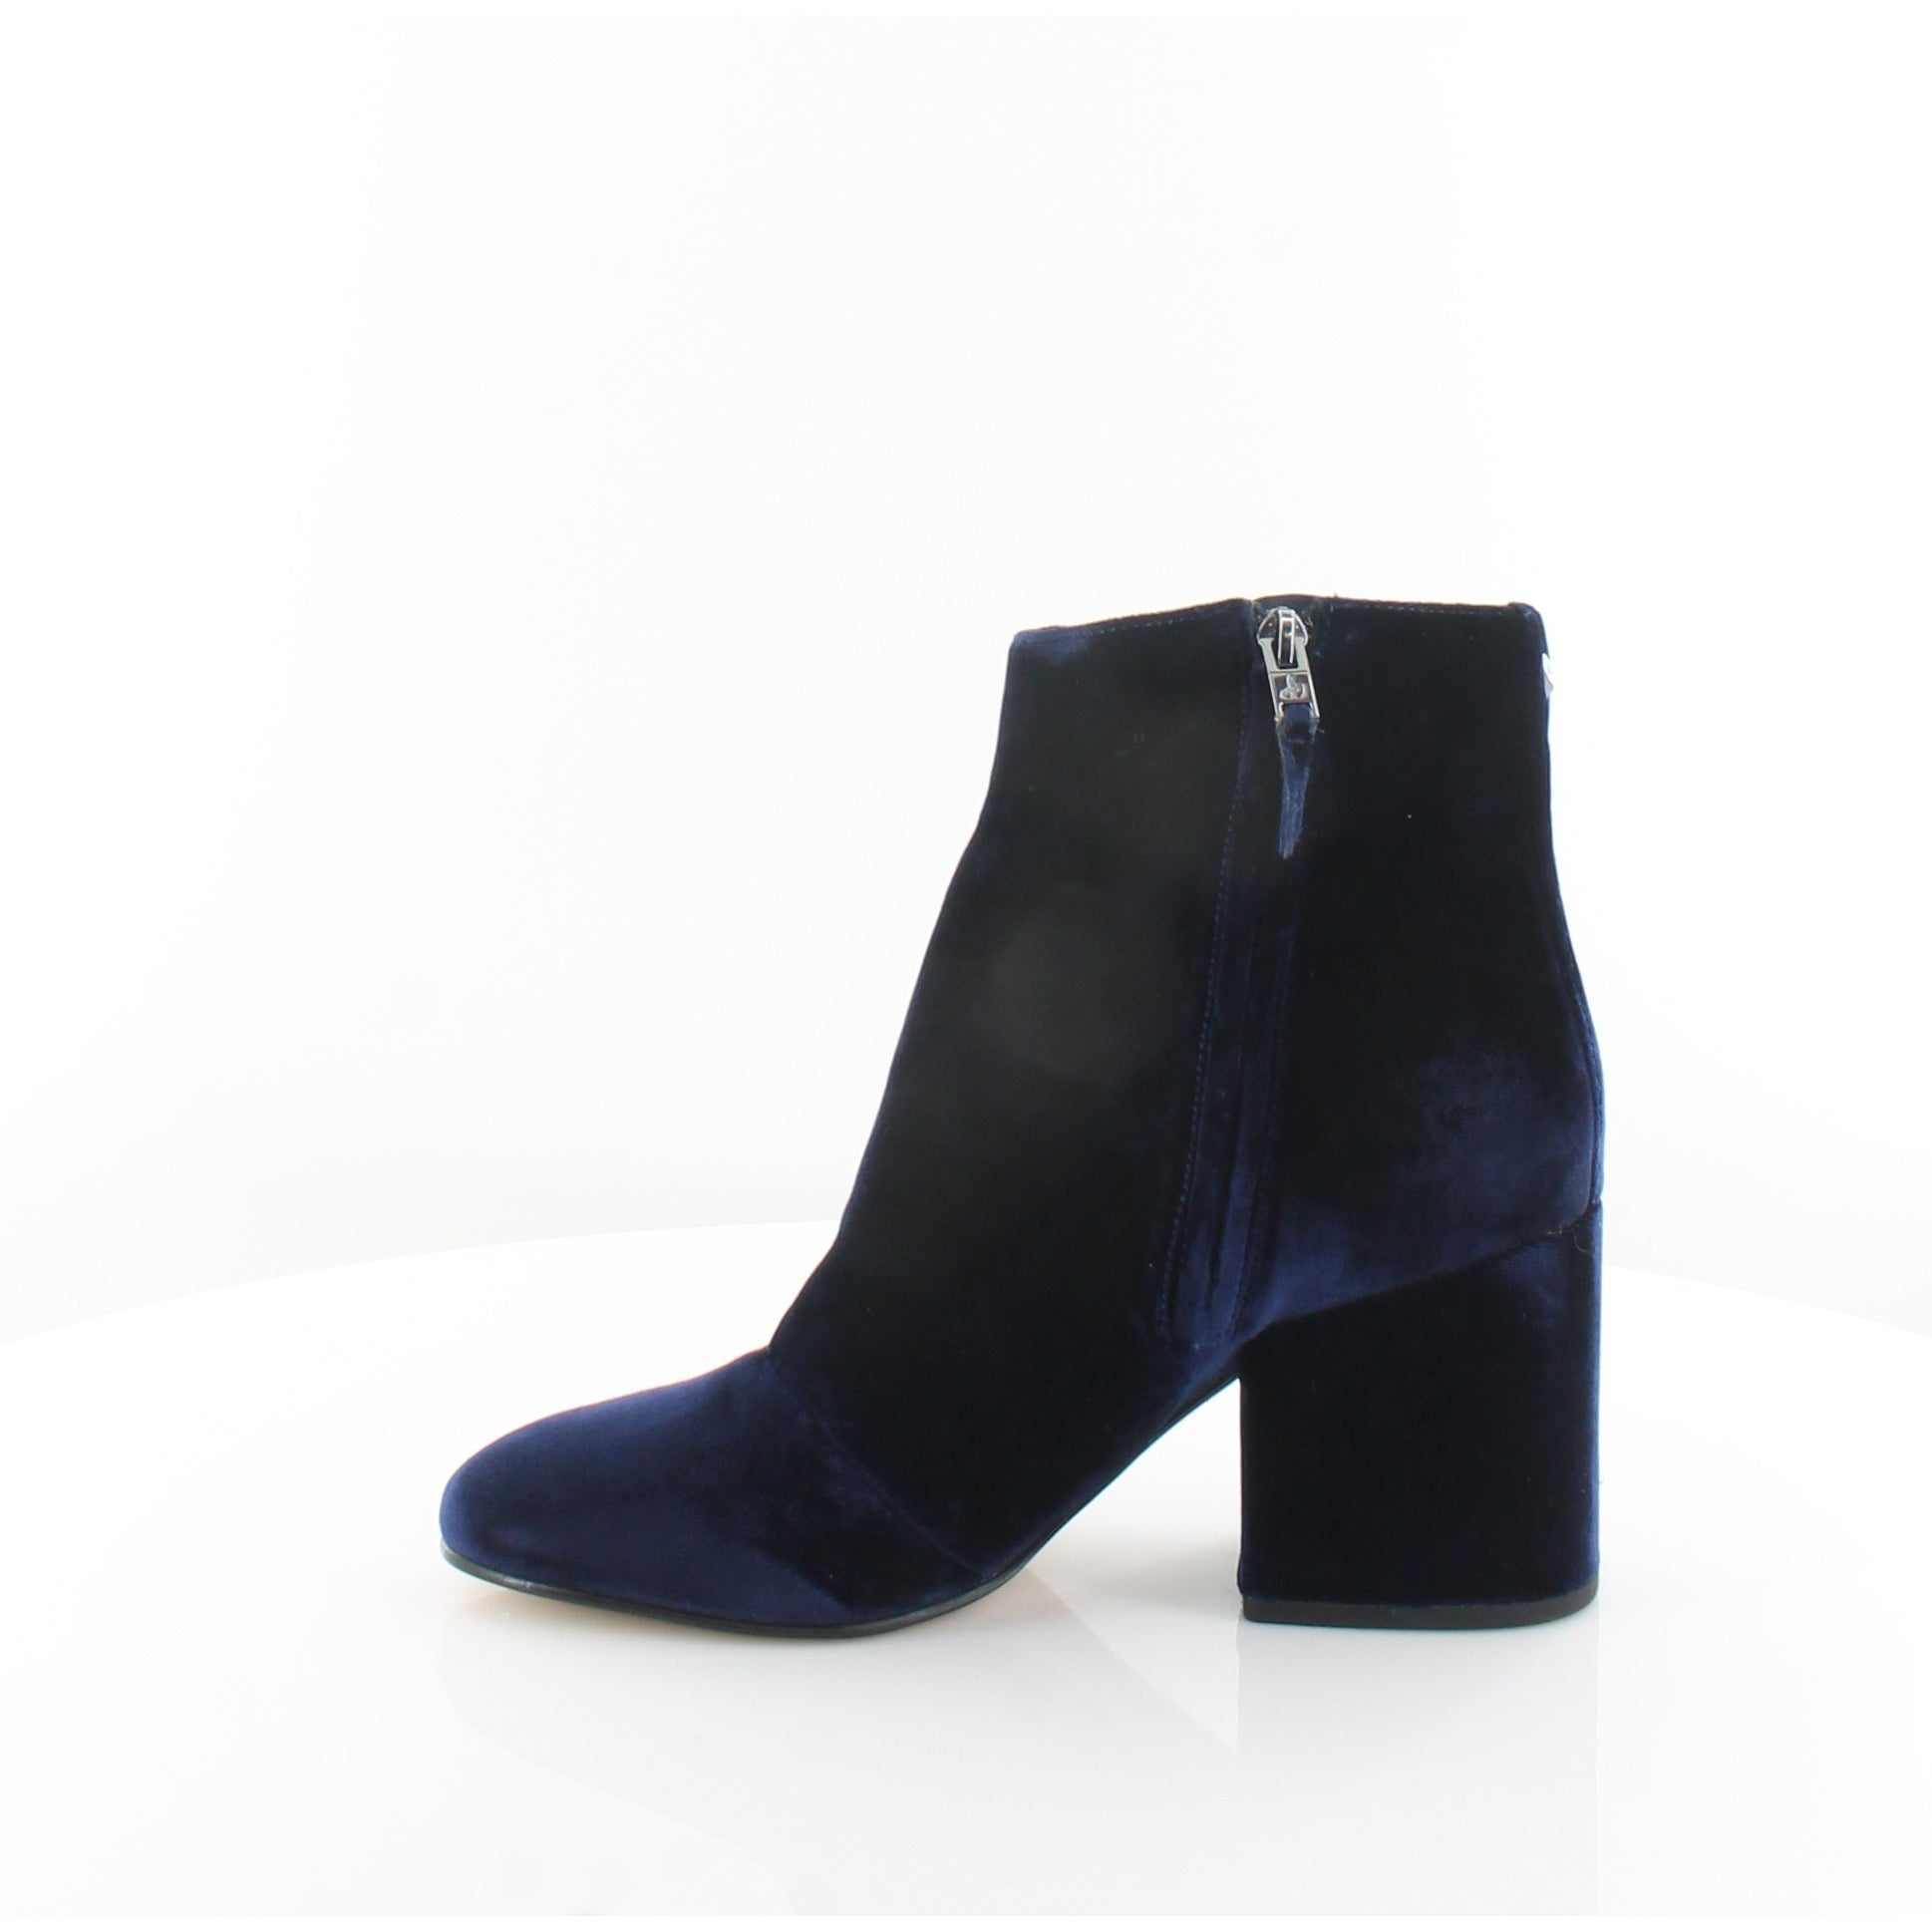 385a3a357 Shop Sam Edelman Taye Women s Boots Navy - Free Shipping Today - Overstock  - 25674595